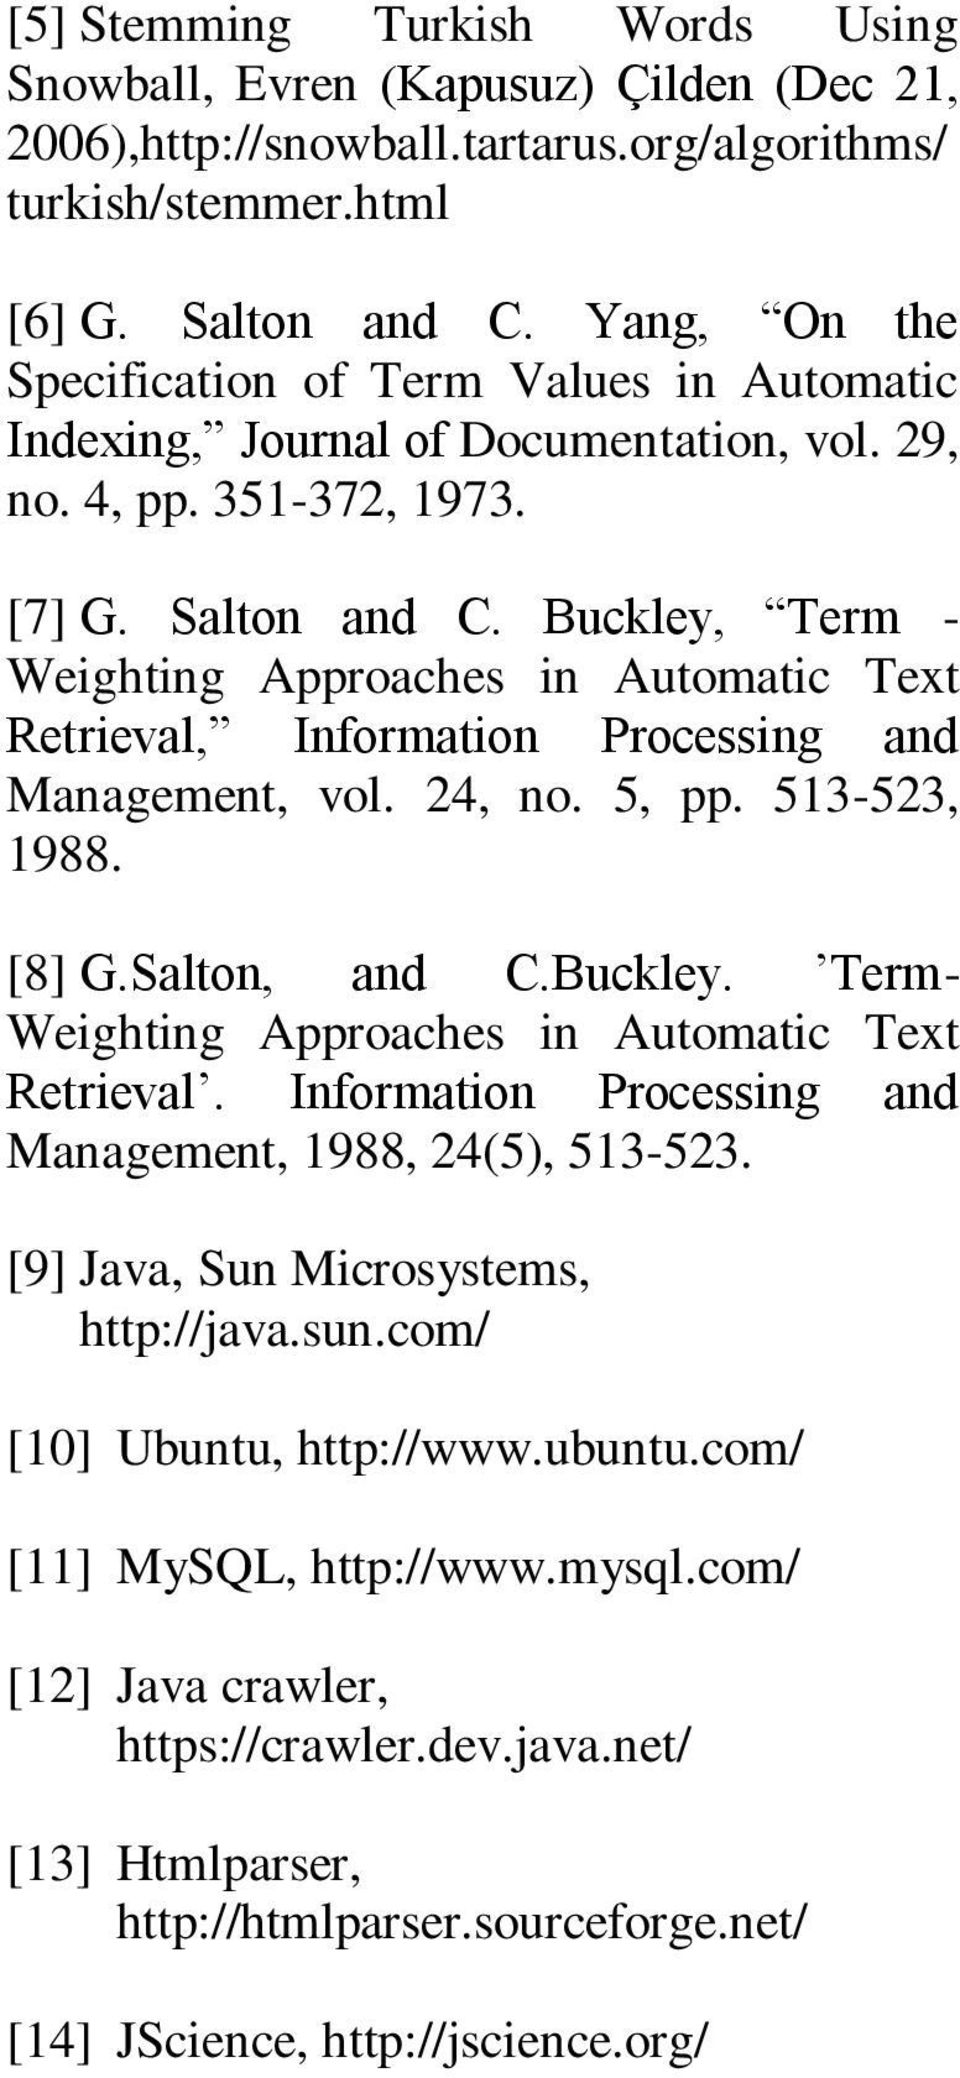 Buckley, Term - Weighting Approaches in Automatic Text Retrieval, Information Processing and Management, vol. 24, no. 5, pp. 513-523, 1988. [8] G.Salton, and C.Buckley. Term- Weighting Approaches in Automatic Text Retrieval.